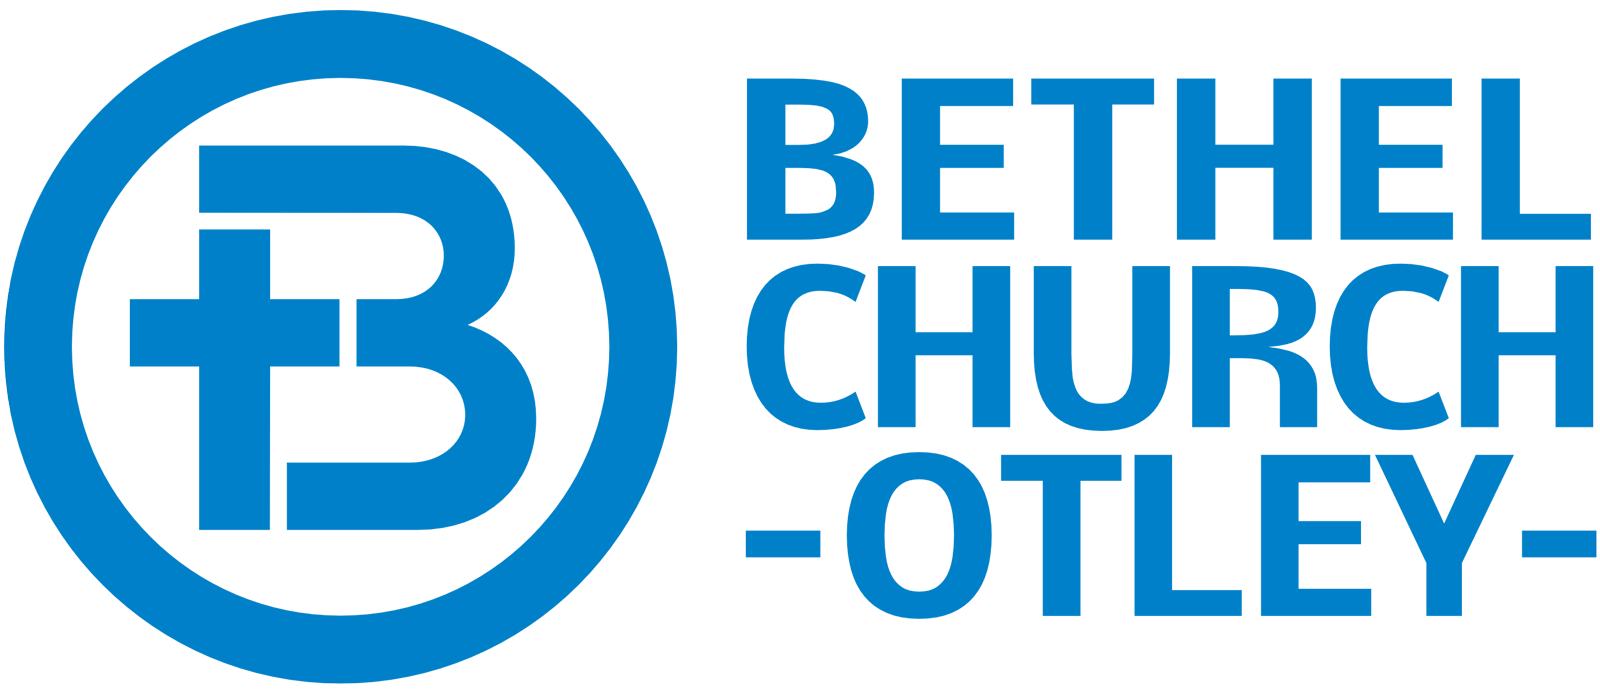 Bethel Church Otley Logo